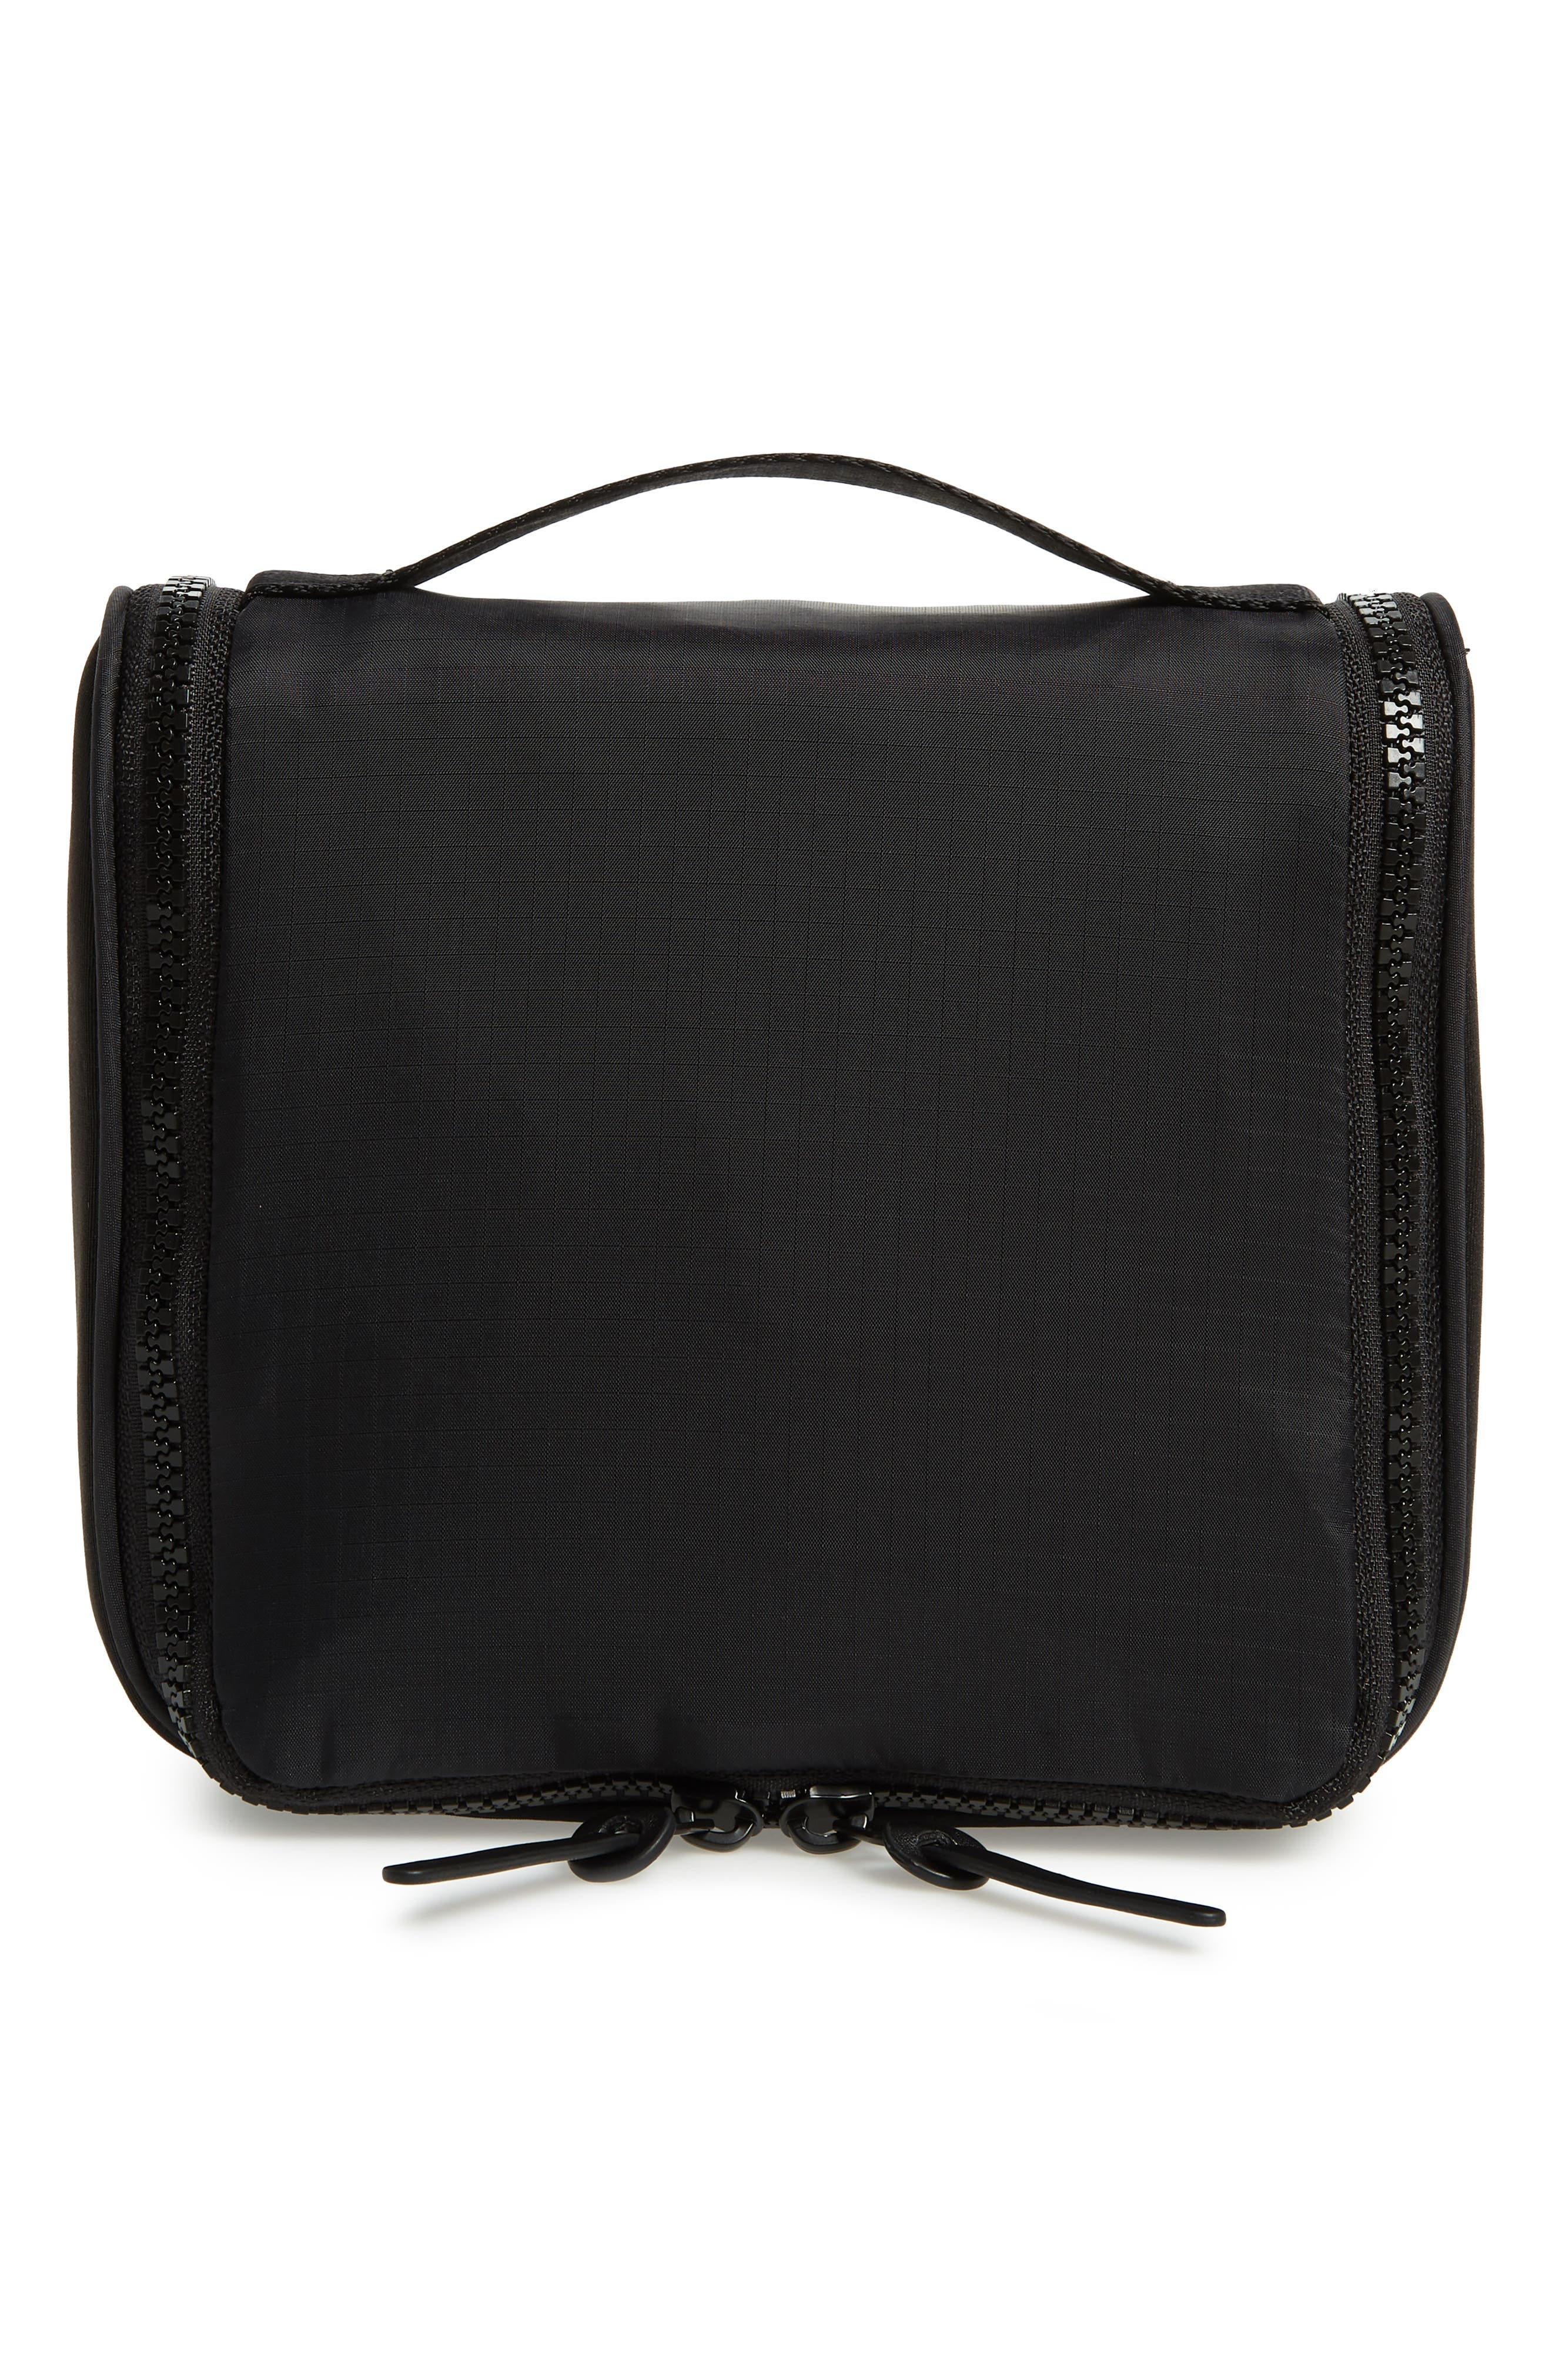 NORDSTROM, Toiletry Bag, Main thumbnail 1, color, BLACK